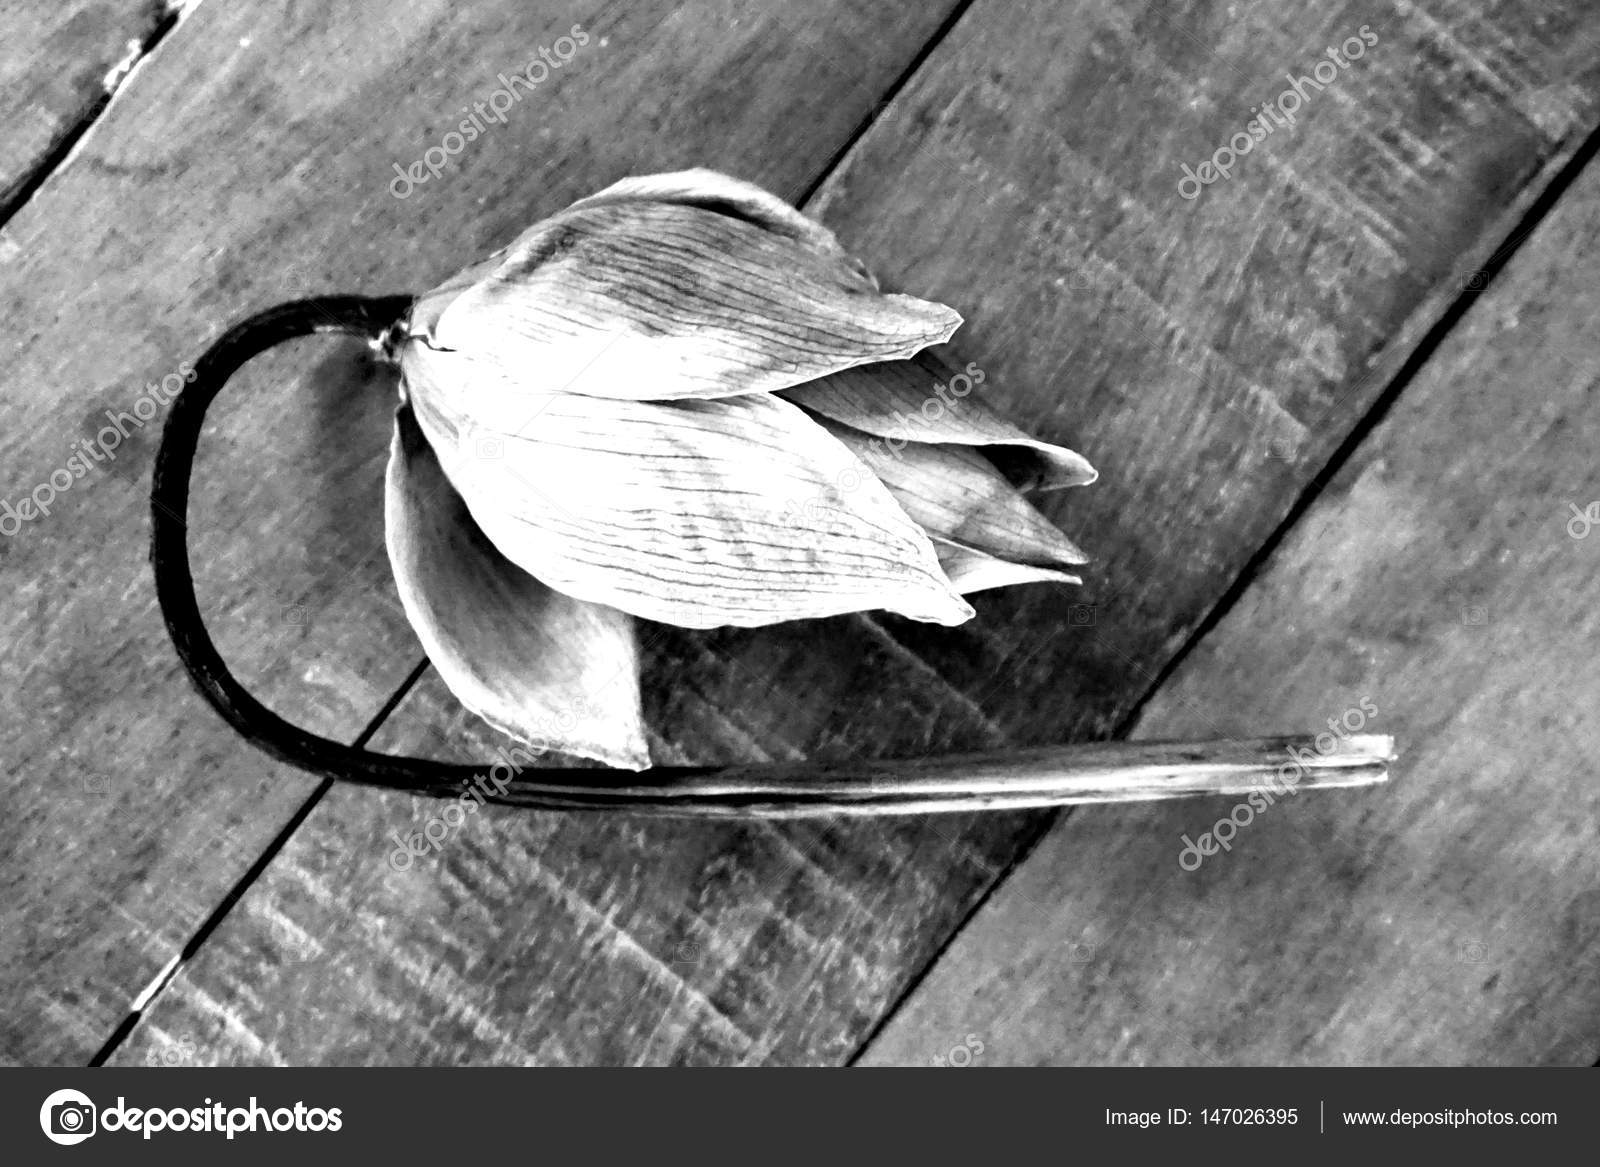 Dry lotus flower stock photo tanantornanutra 147026395 concept of dry lotus flower about pretty is not stable photo by tanantornanutra izmirmasajfo Choice Image